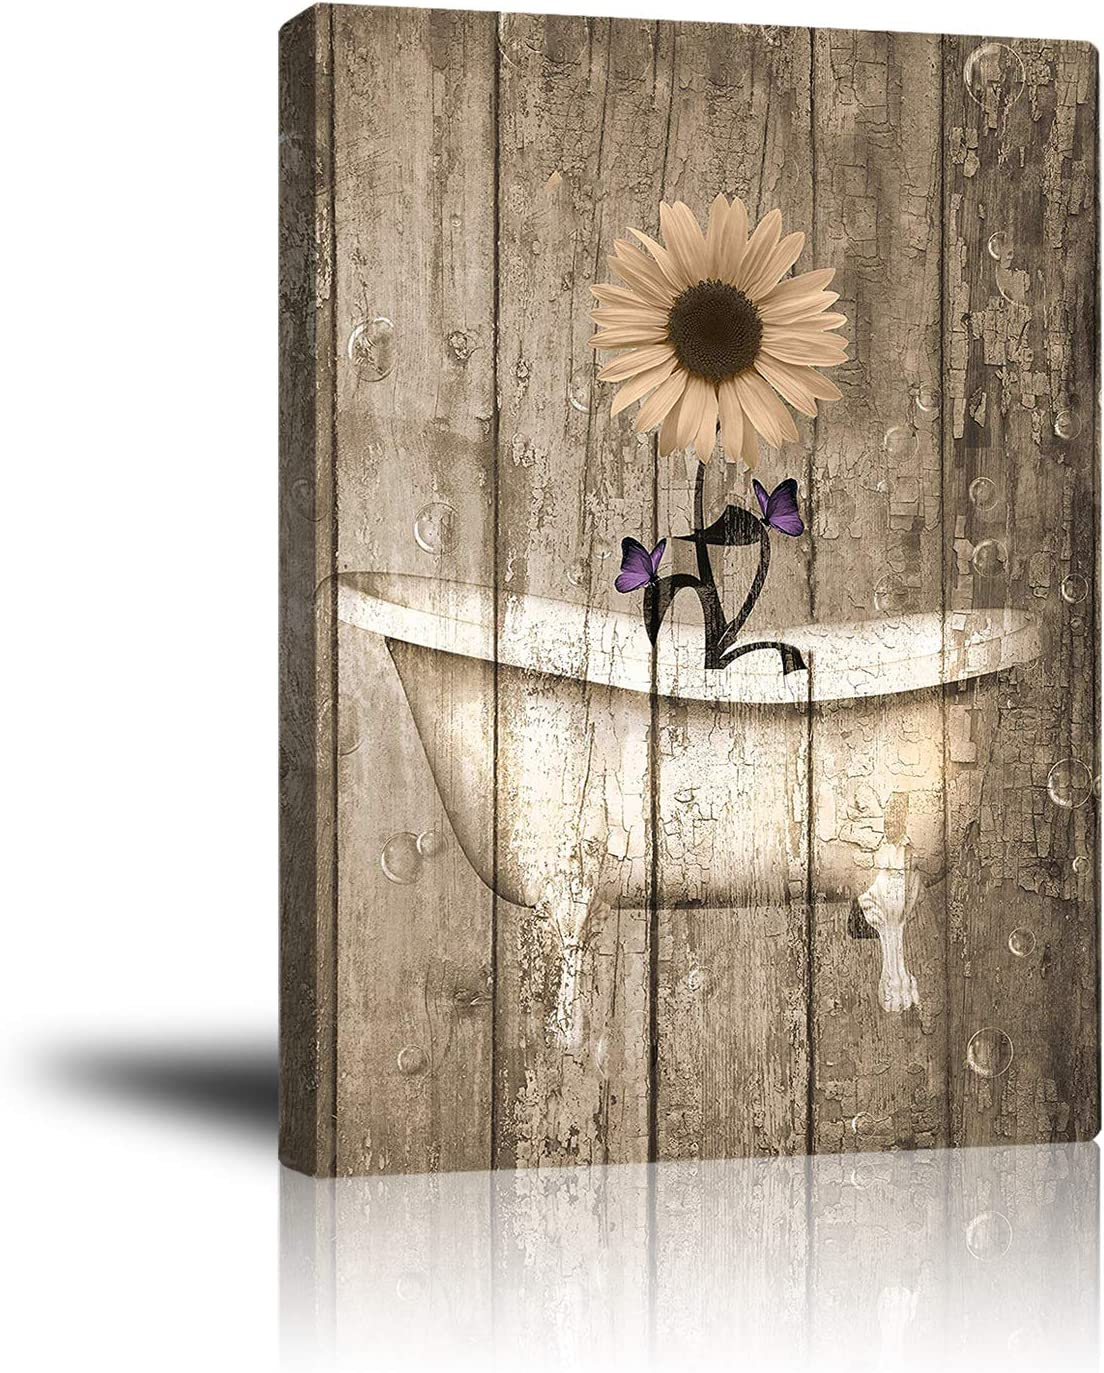 Abstract Floral Wall Art Canvas Print Indoor Decor, Rustic Daisy Purple Butterfly and Bathtub Painting Artwork for Home Living Room Bathroom Bedroom Bar Office Ready to Hang 16